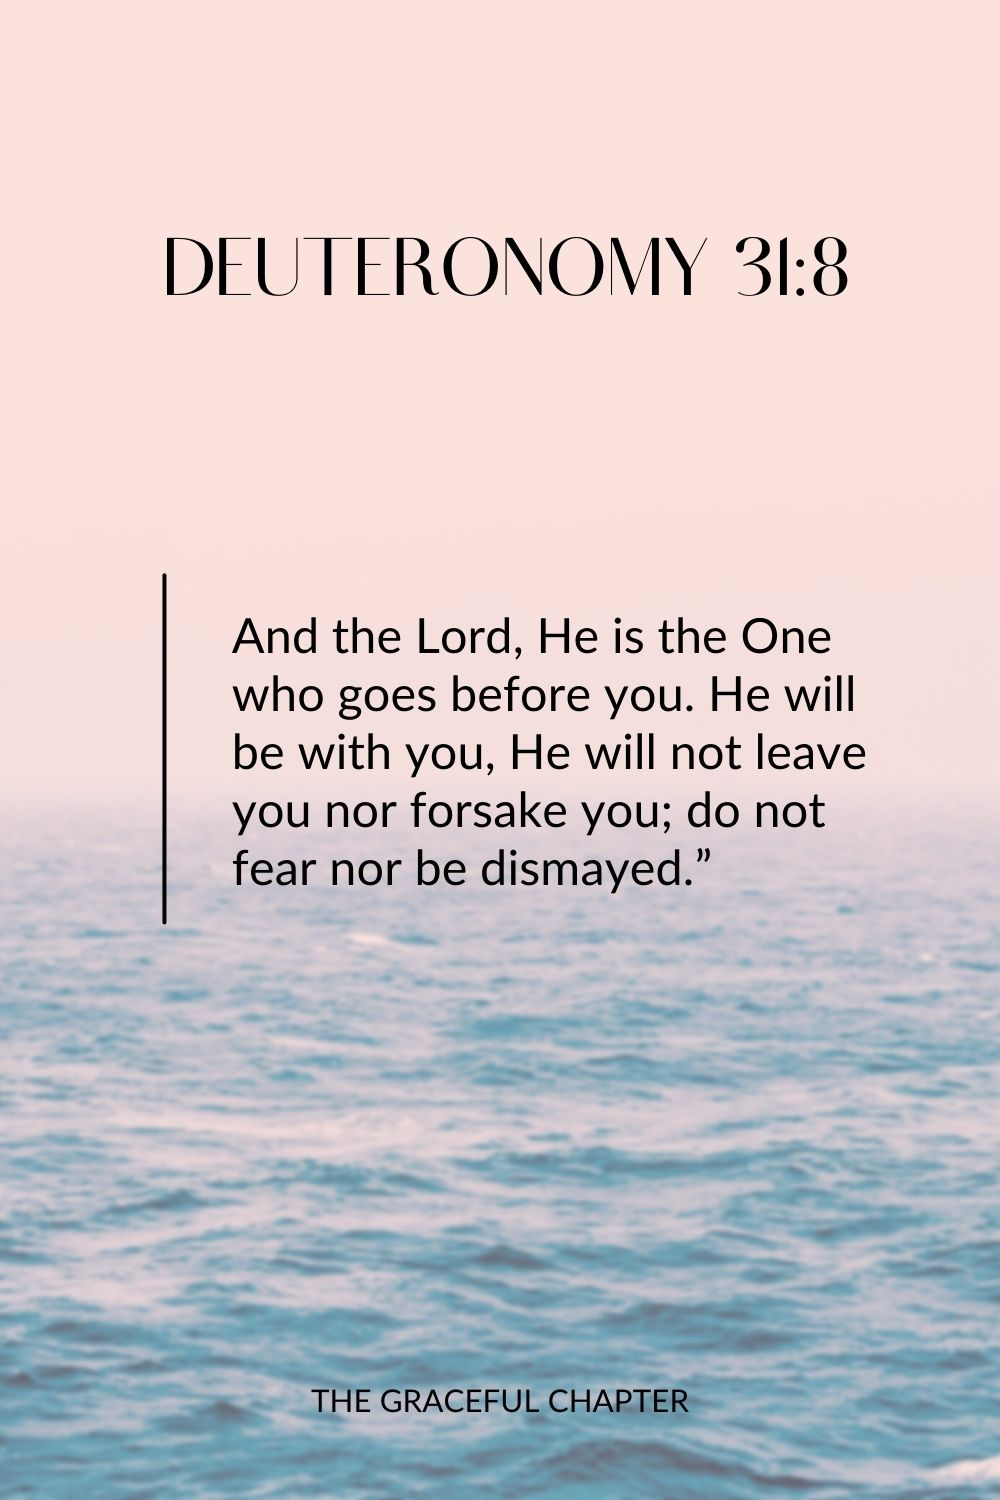 "And the Lord, He is the One who goes before you. He will be with you, He will not leave you nor forsake you; do not fear nor be dismayed."" Deuteronomy 31:8"